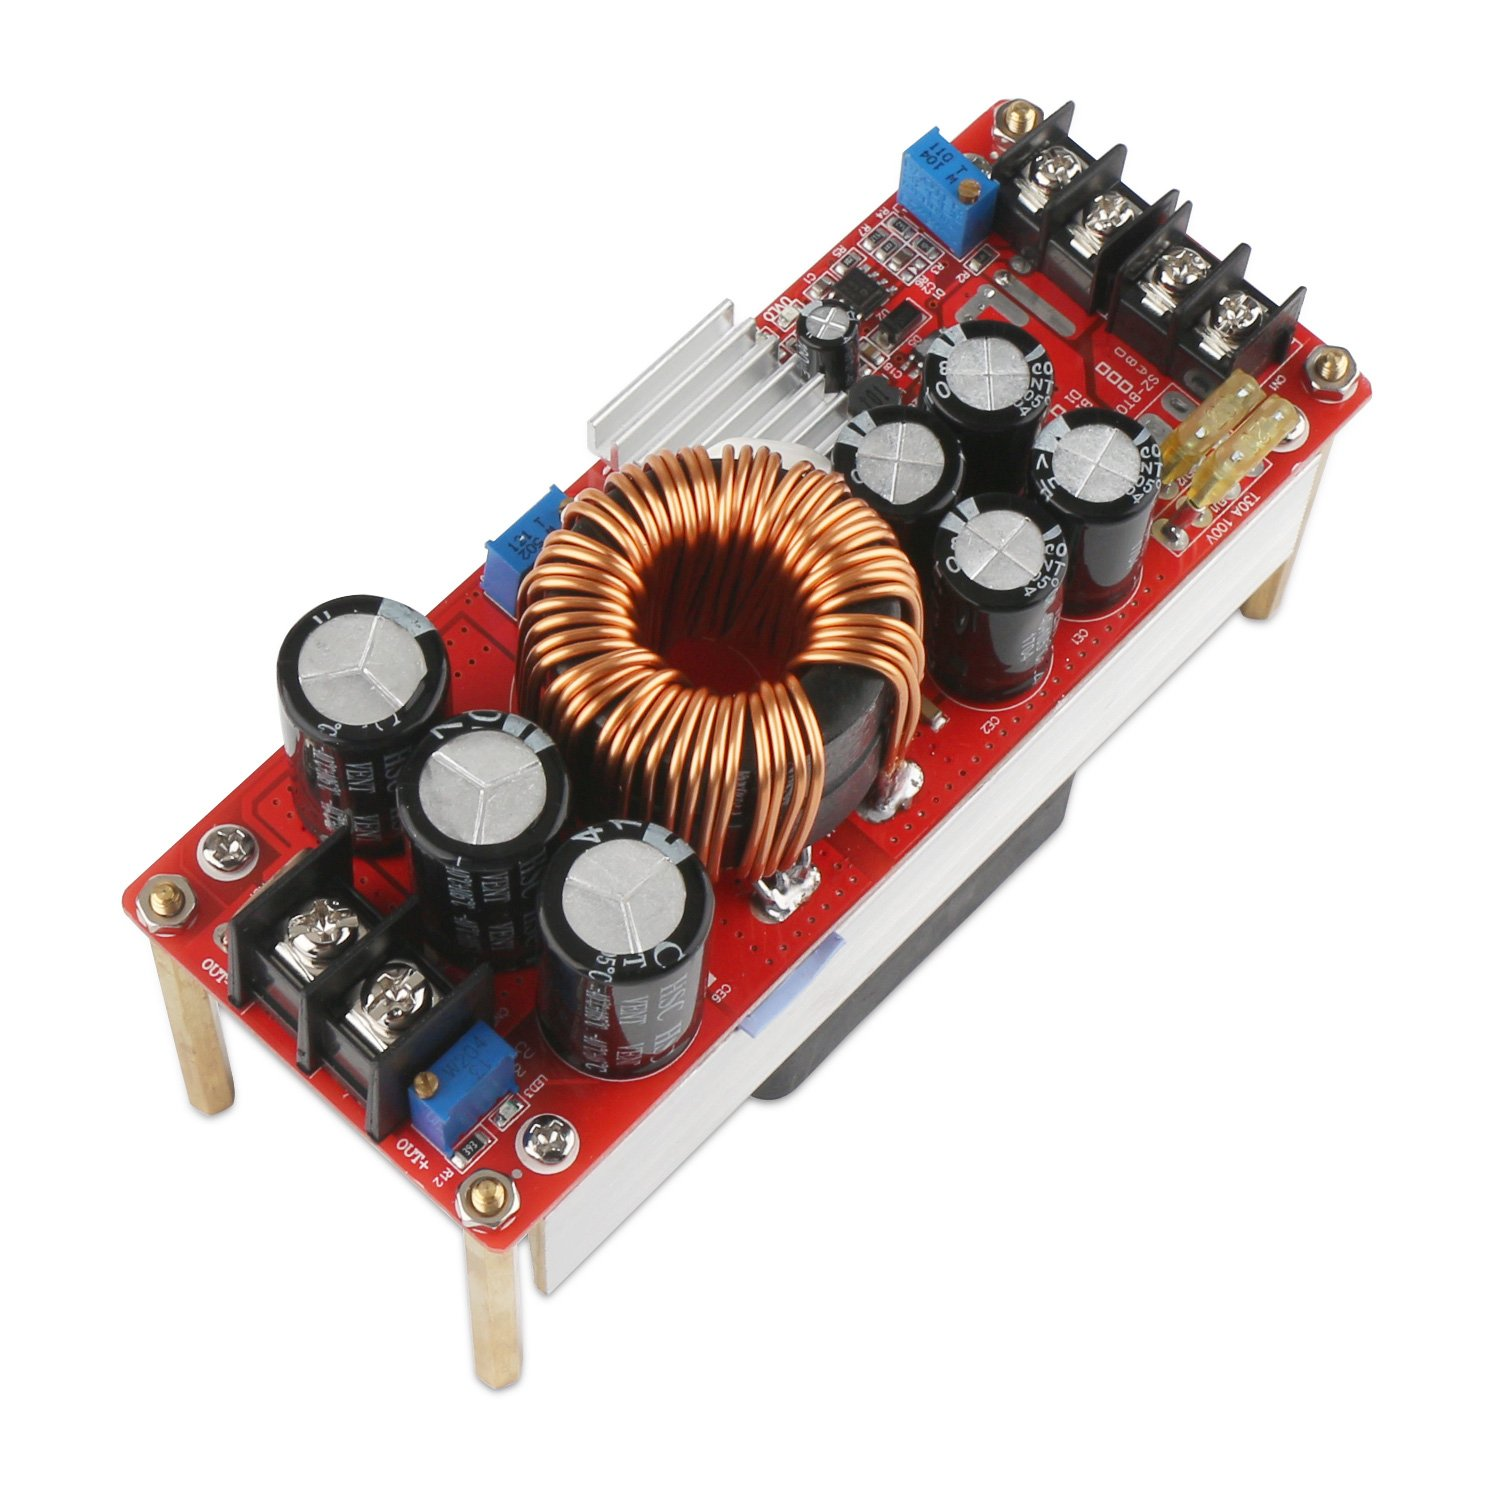 Boost Voltage Converter, DROK 1500W Voltage Regulator Booster DC 10V-60V 12V Step Up to DC 12V-90V 24V 30A Power Supply Module High Power Volt Transformer Circuit Board with Cooling Fan by DROK (Image #7)